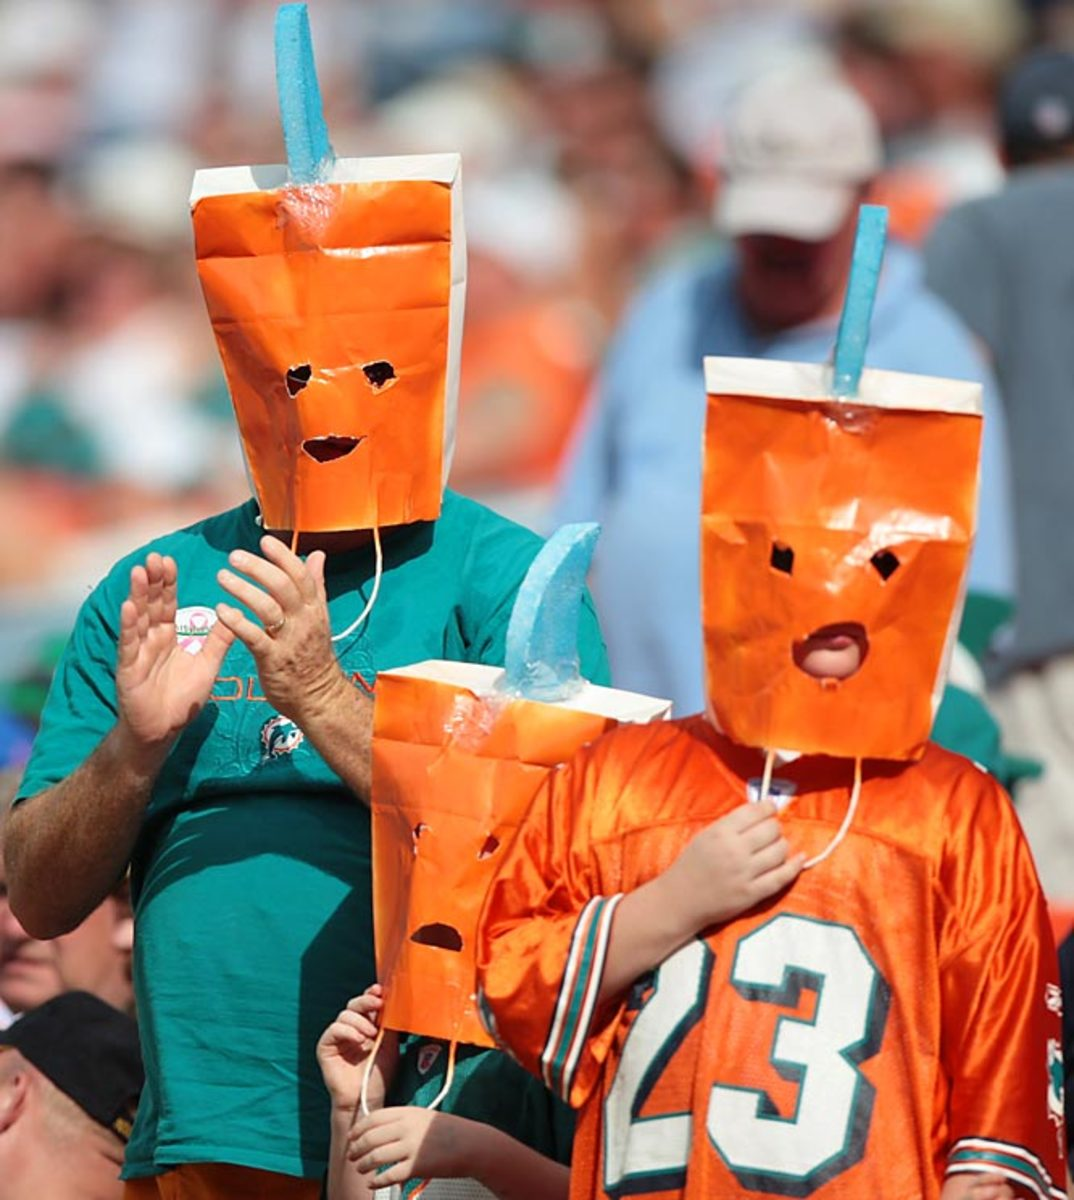 The unknown Dolphin fans